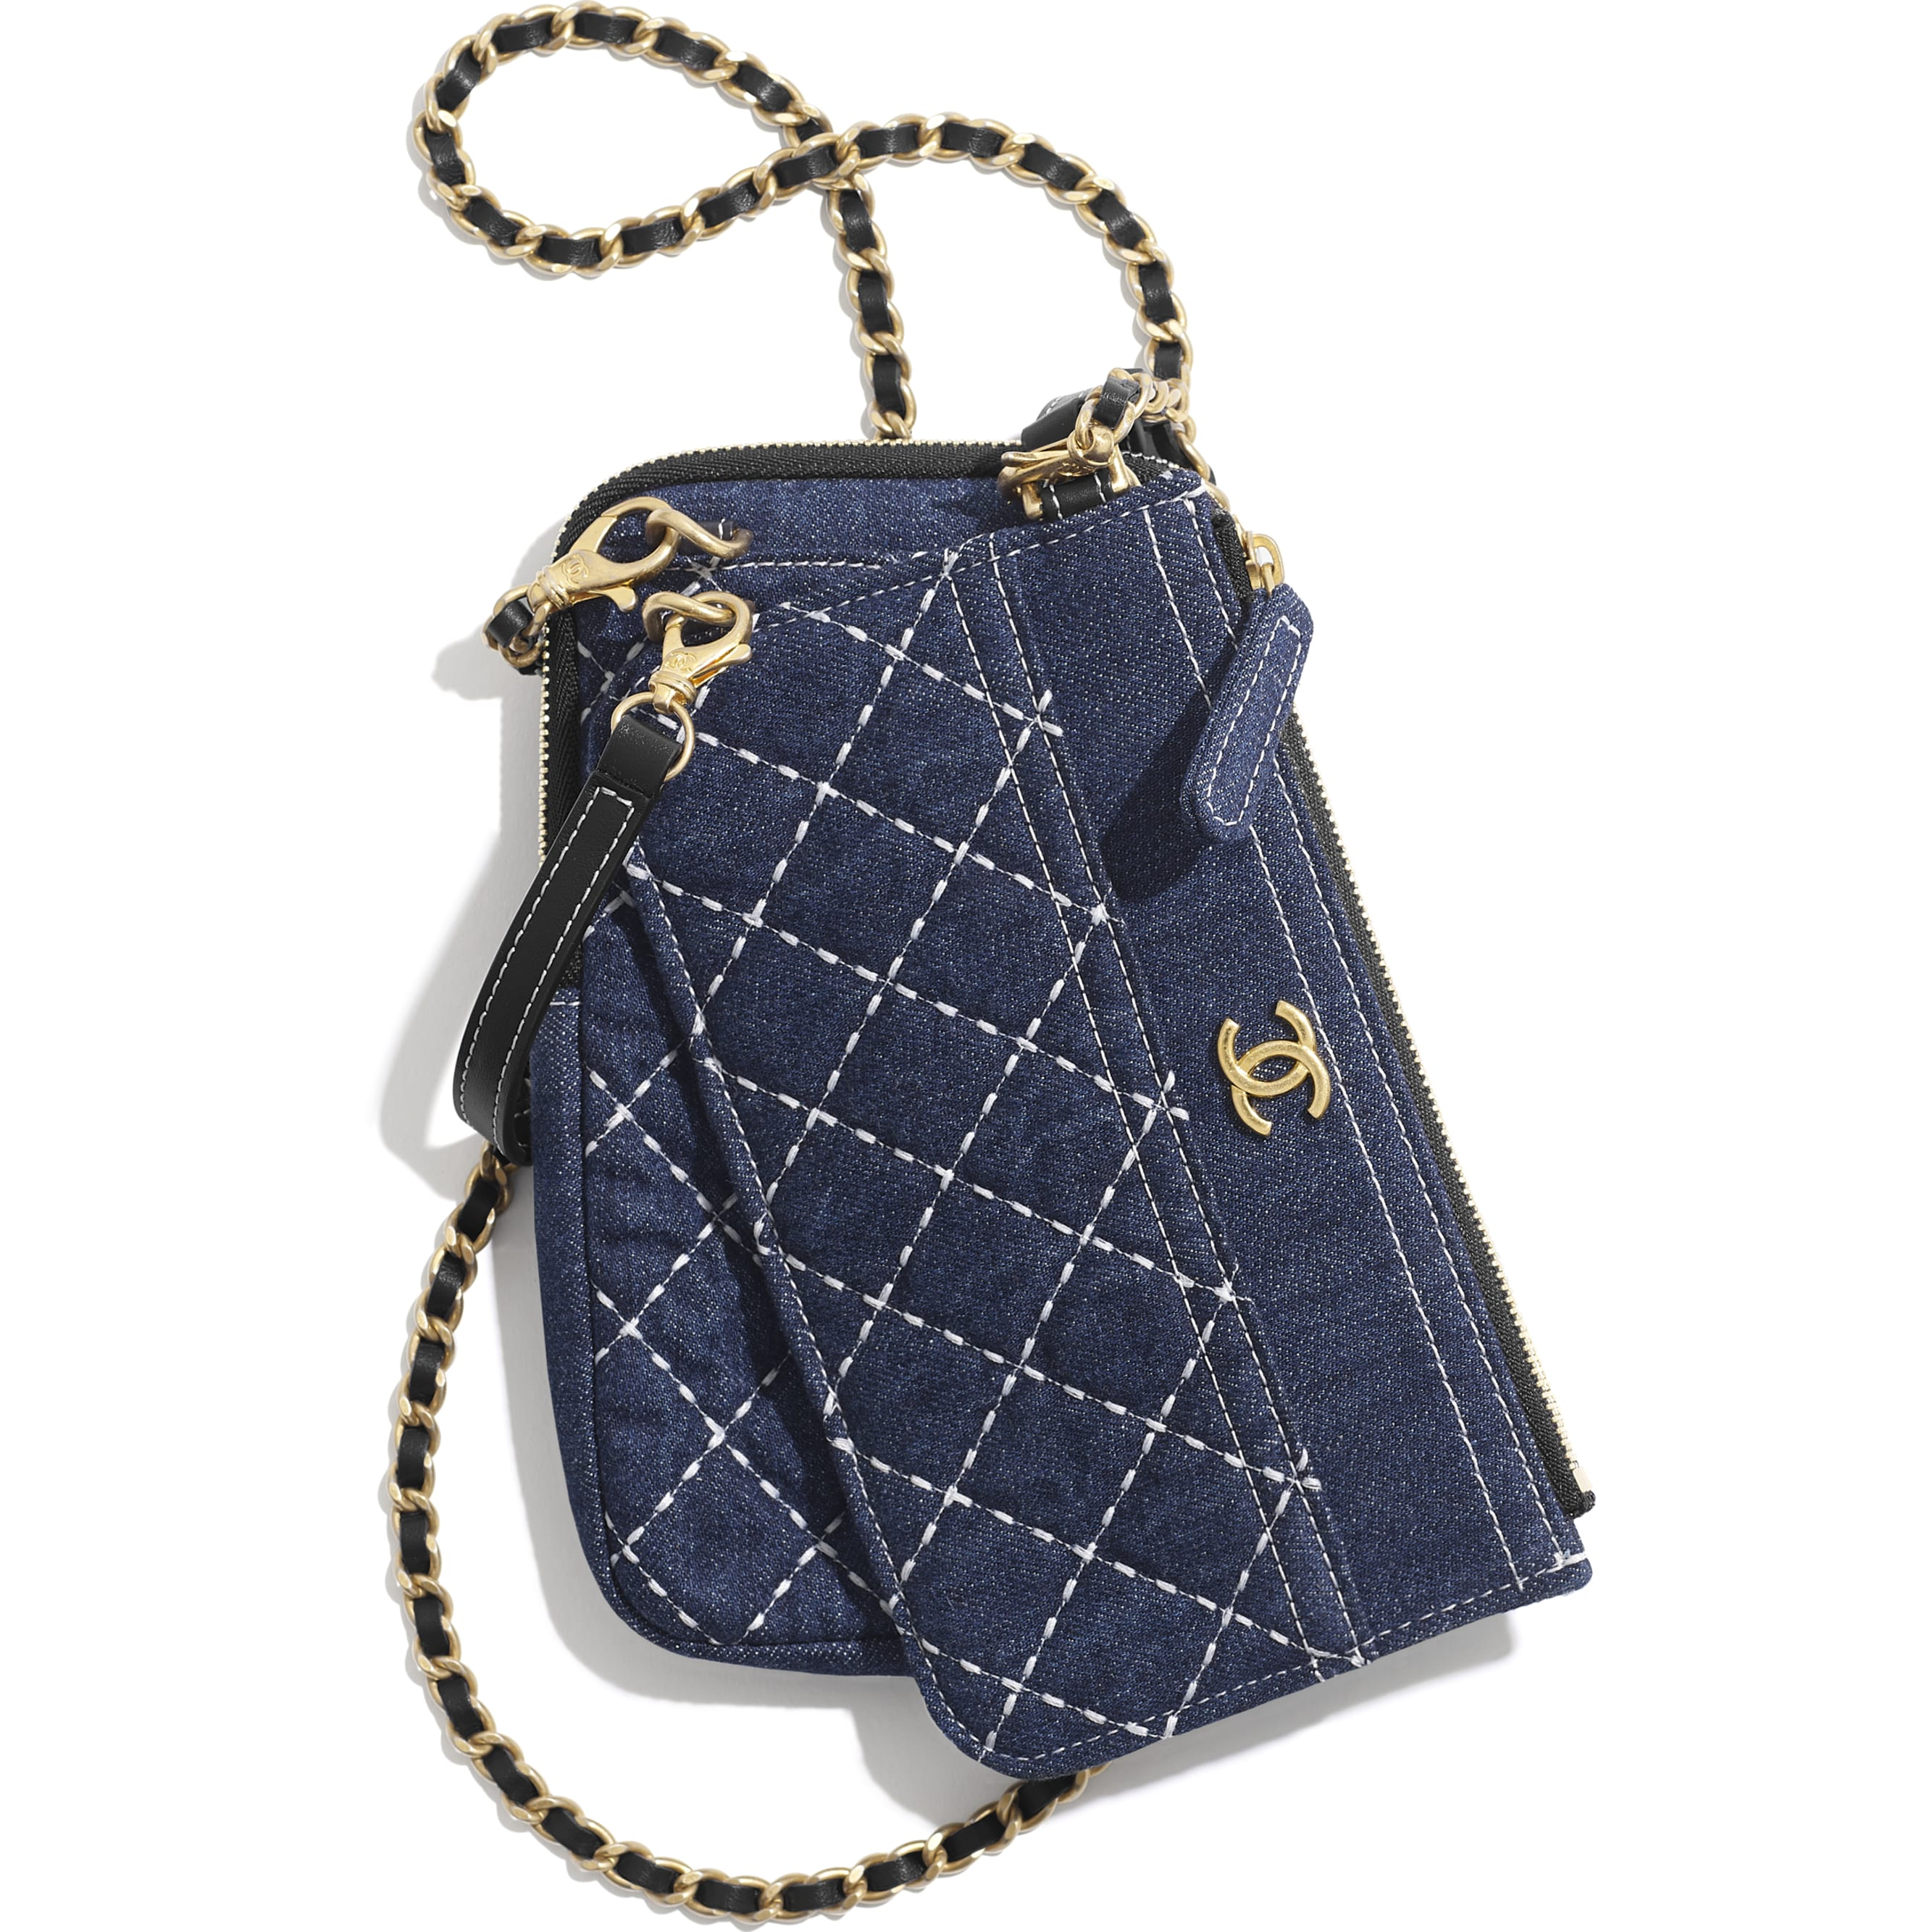 Clutch with Chain - Blue - Denim & Gold-Tone Metal - CHANEL - Alternative view - see standard sized version